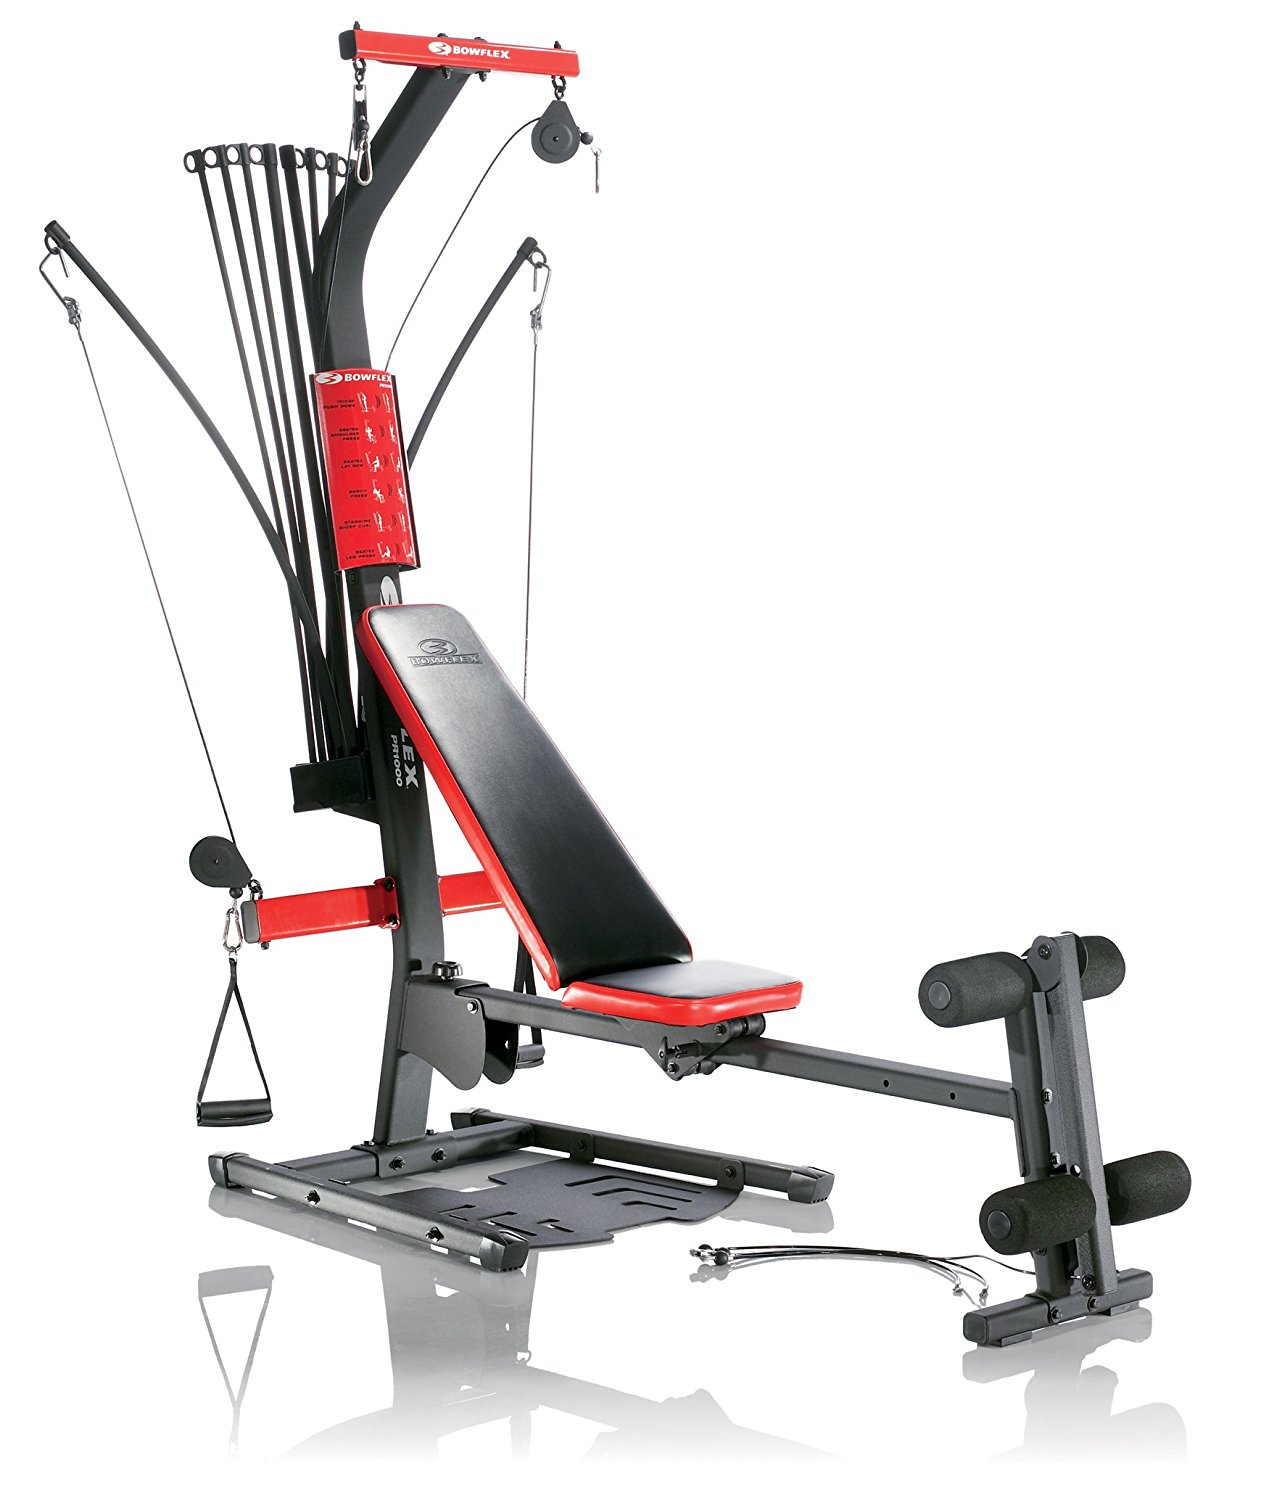 Best home gym under top rated updated